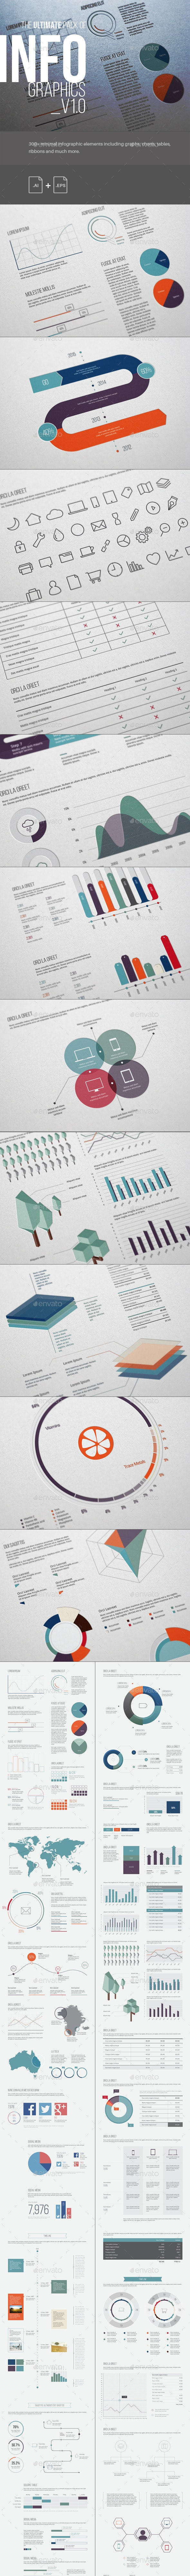 Infographic Elements v1.0 - Infographics